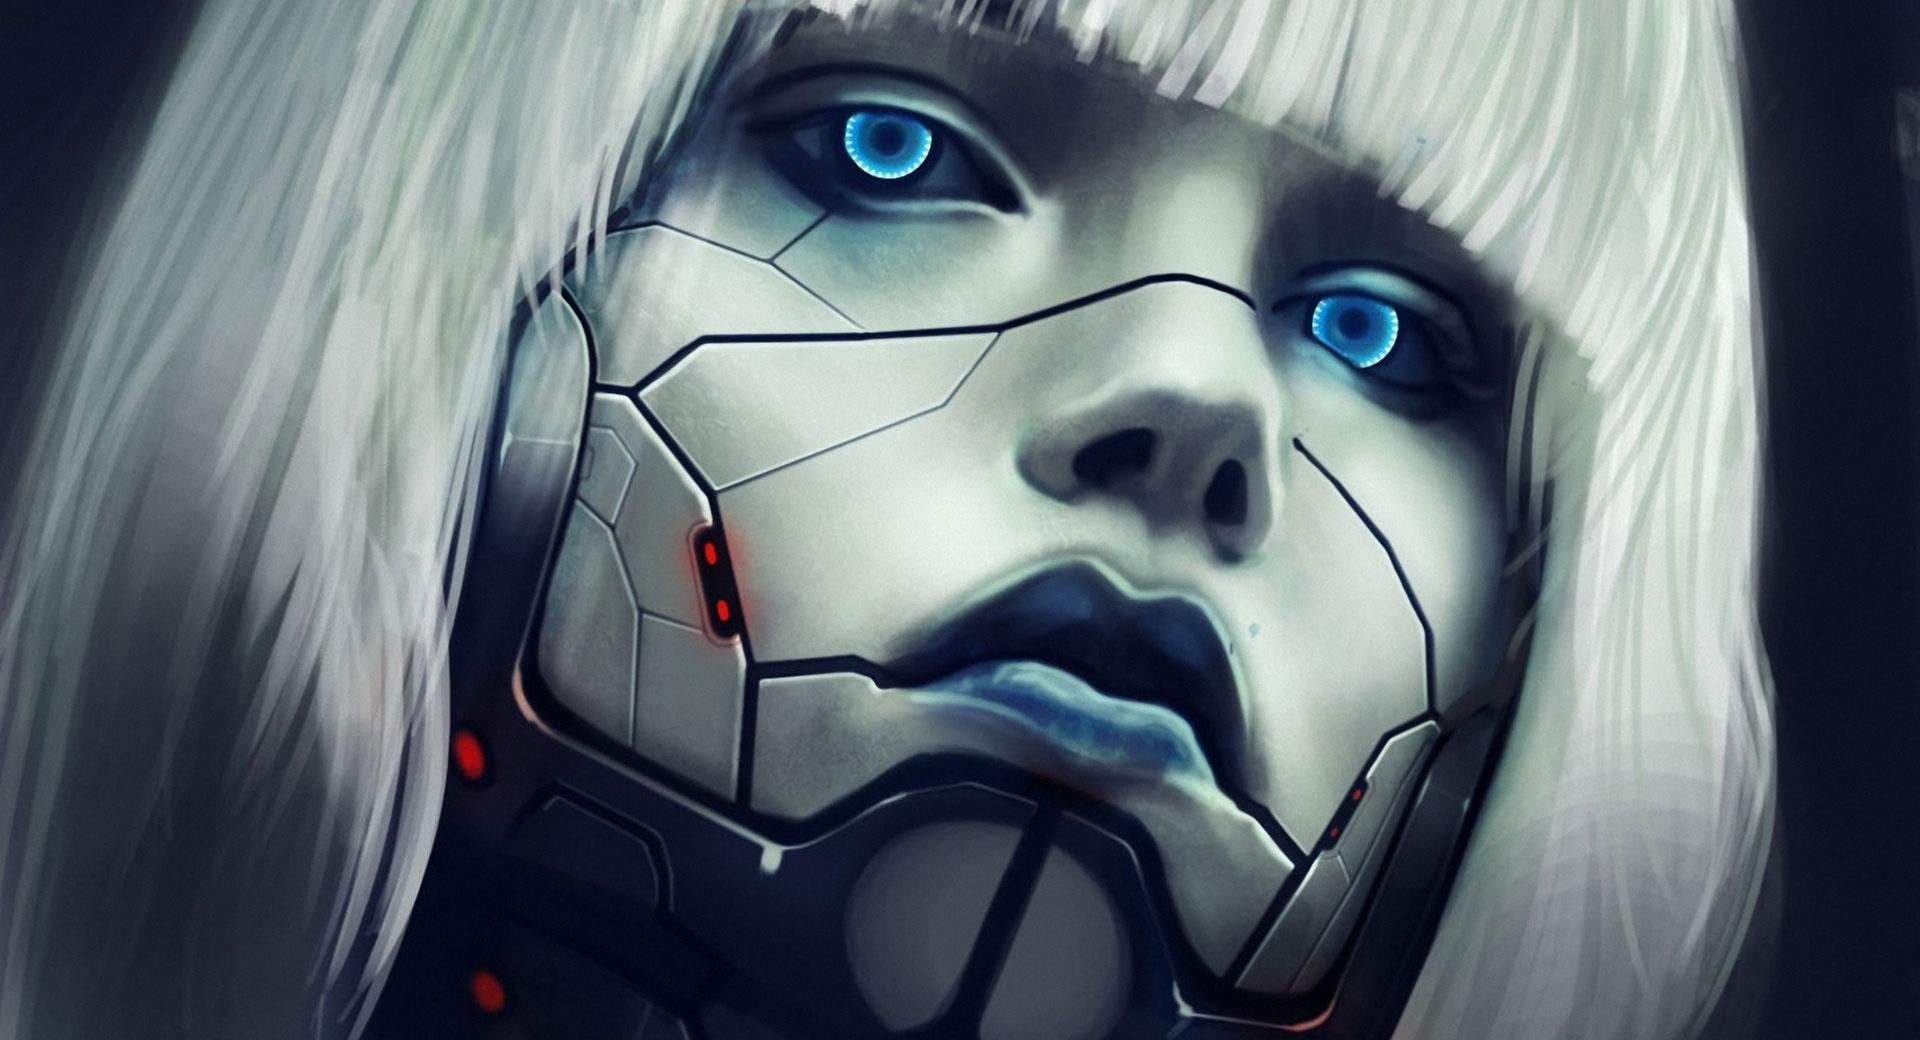 Robot Face wallpapers HD quality